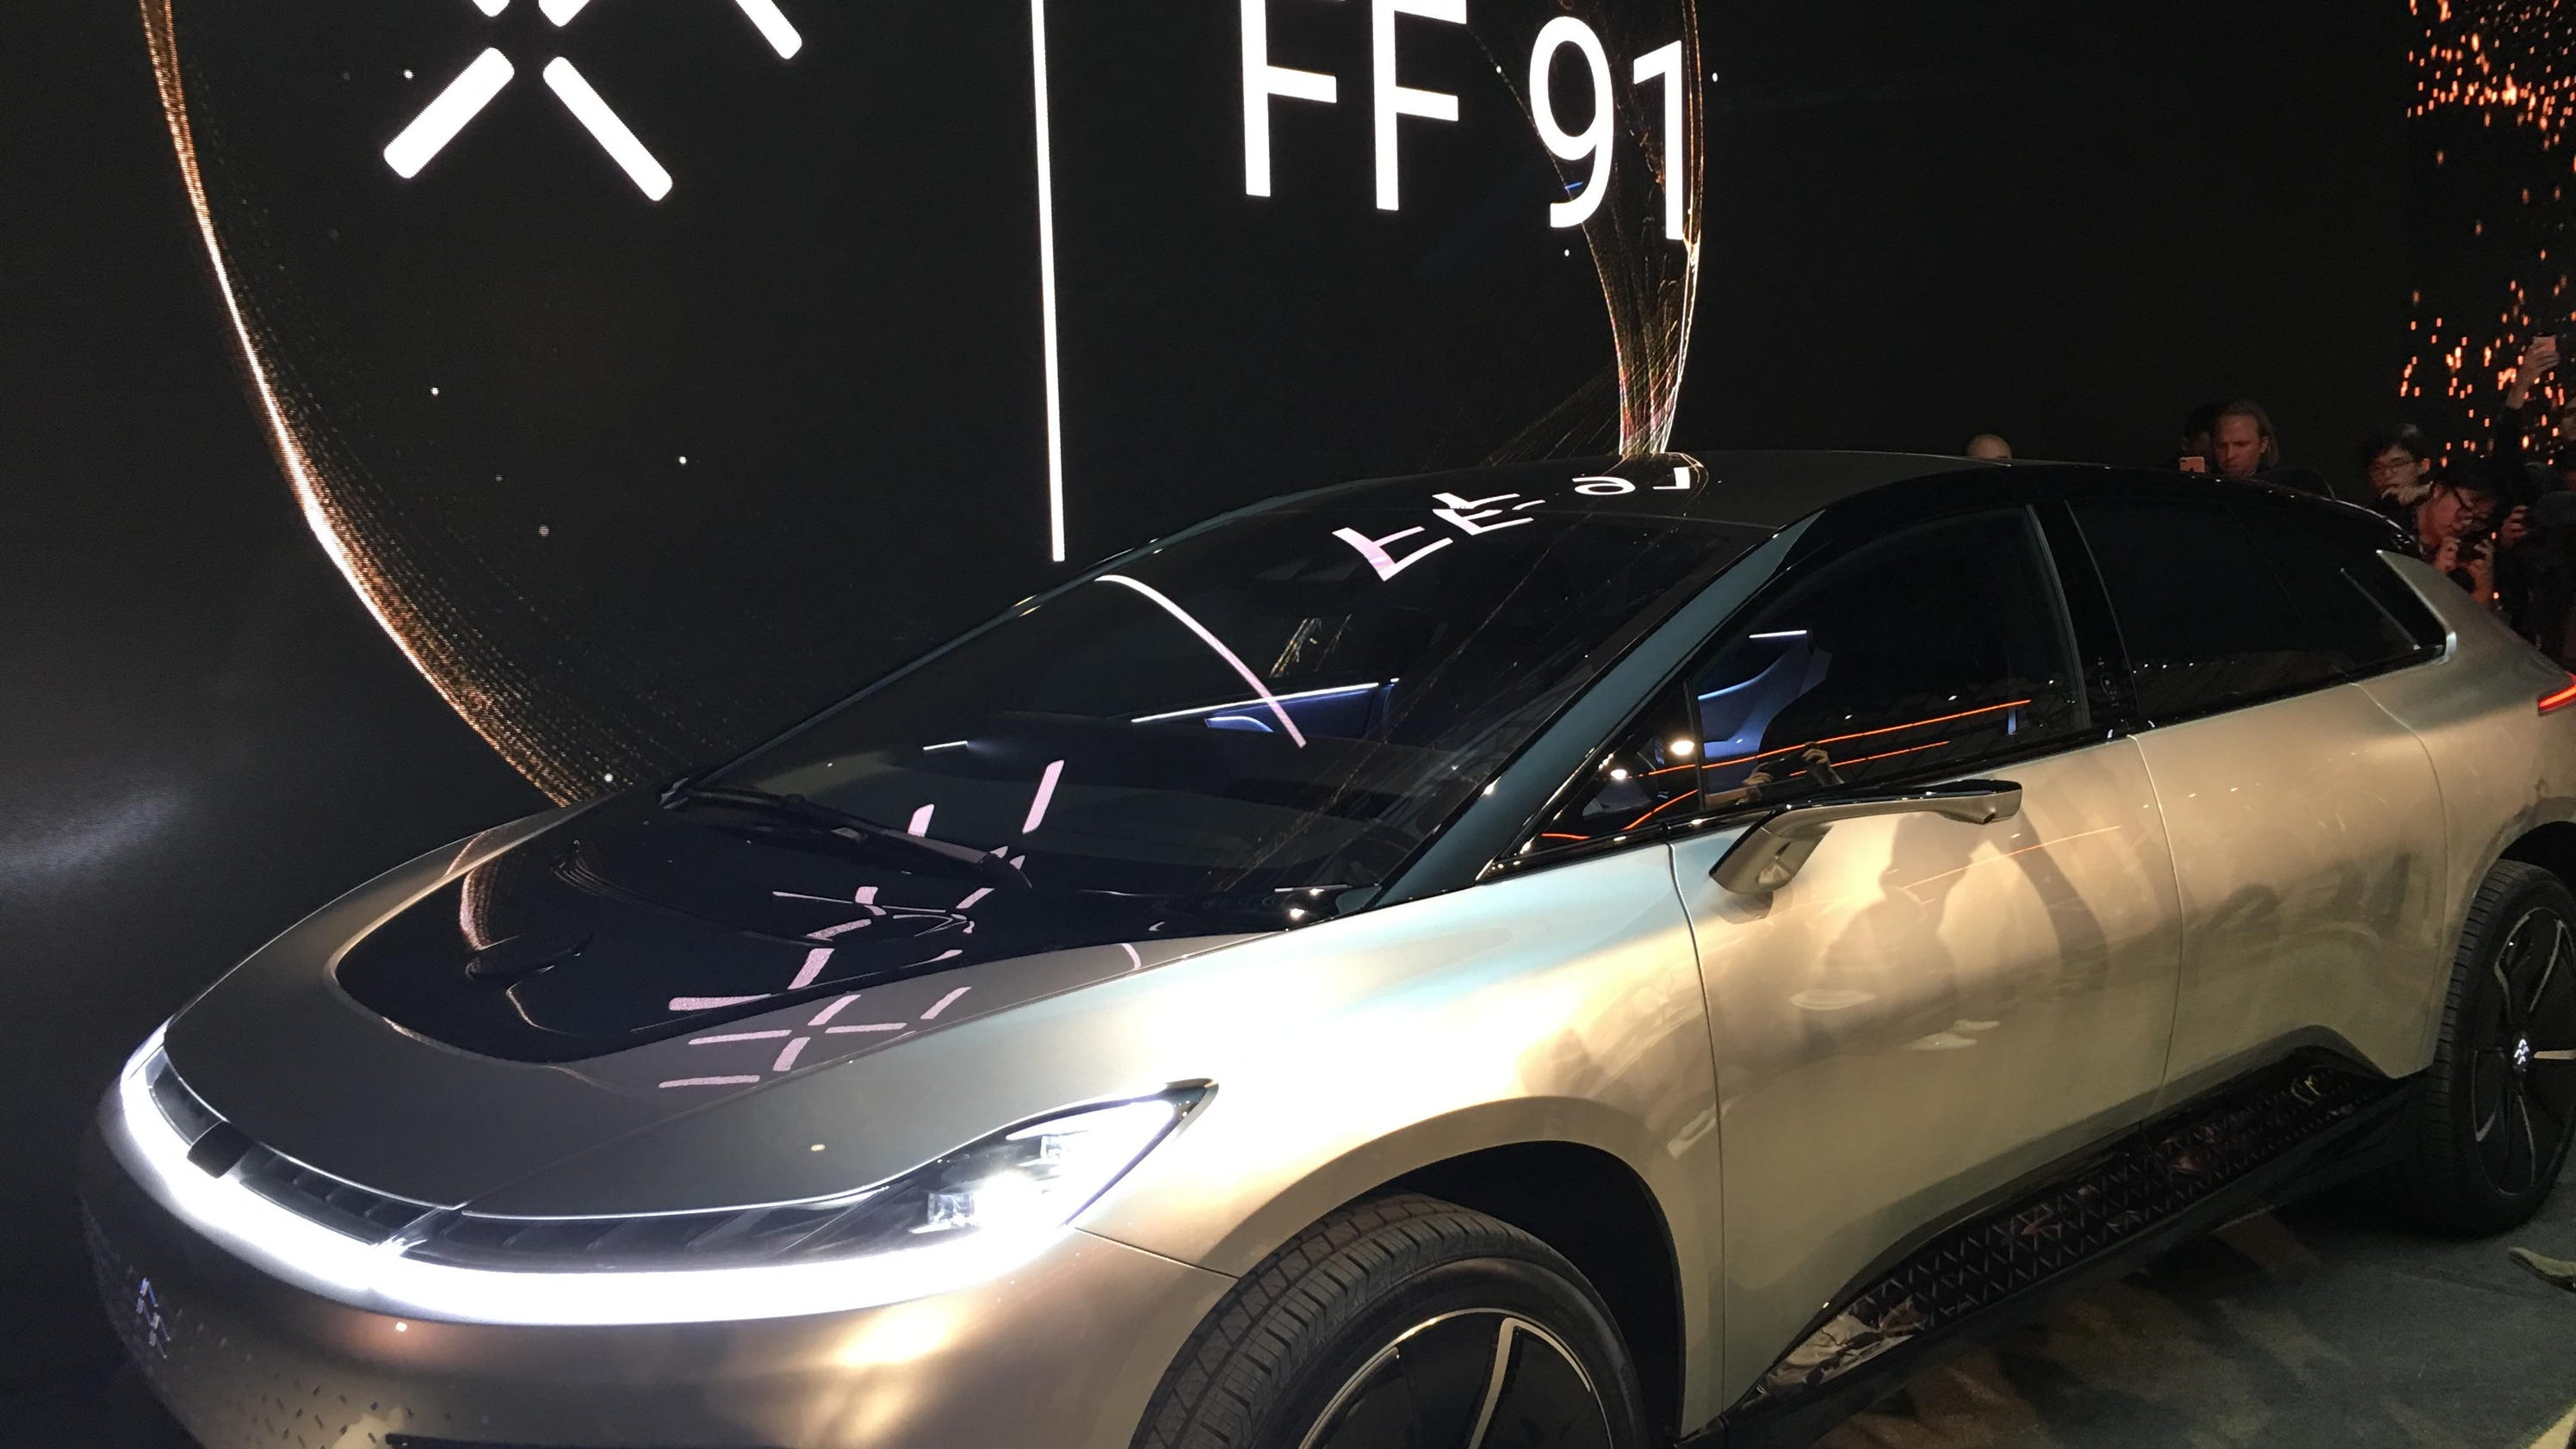 caa35e083a79 Faraday Future unveils FF 91 as  new species  (7.95 13)